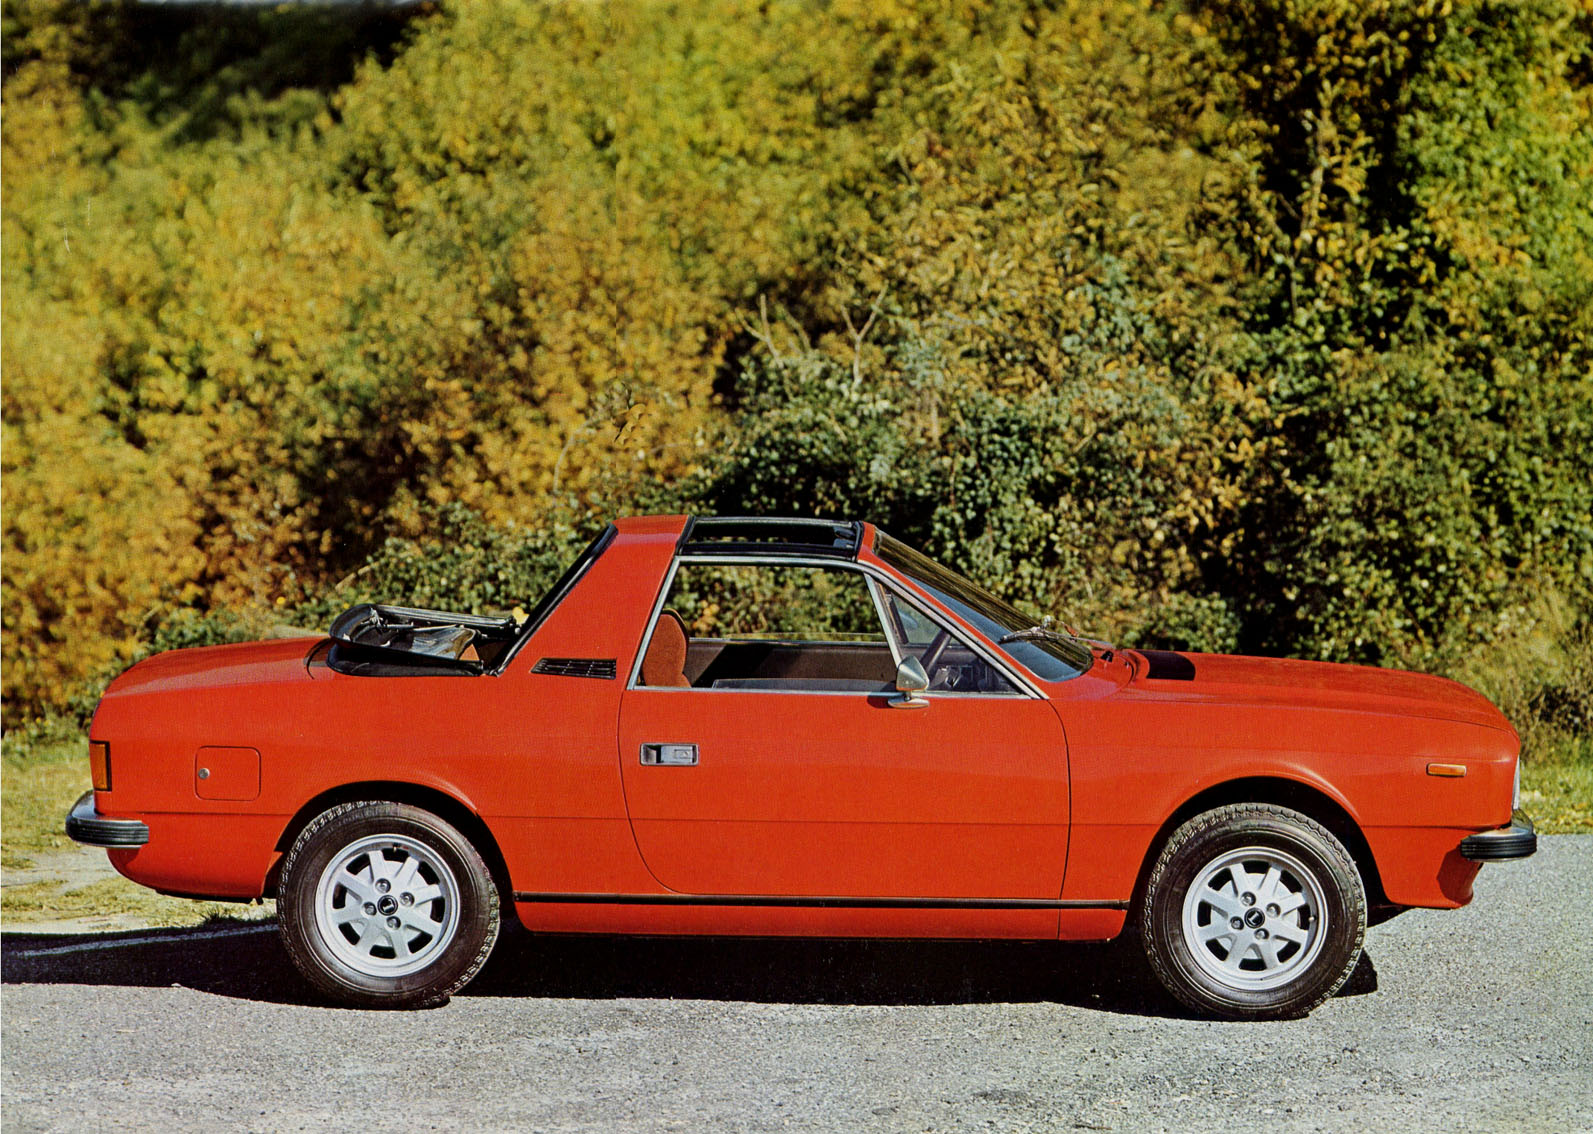 79lc on fiat cars